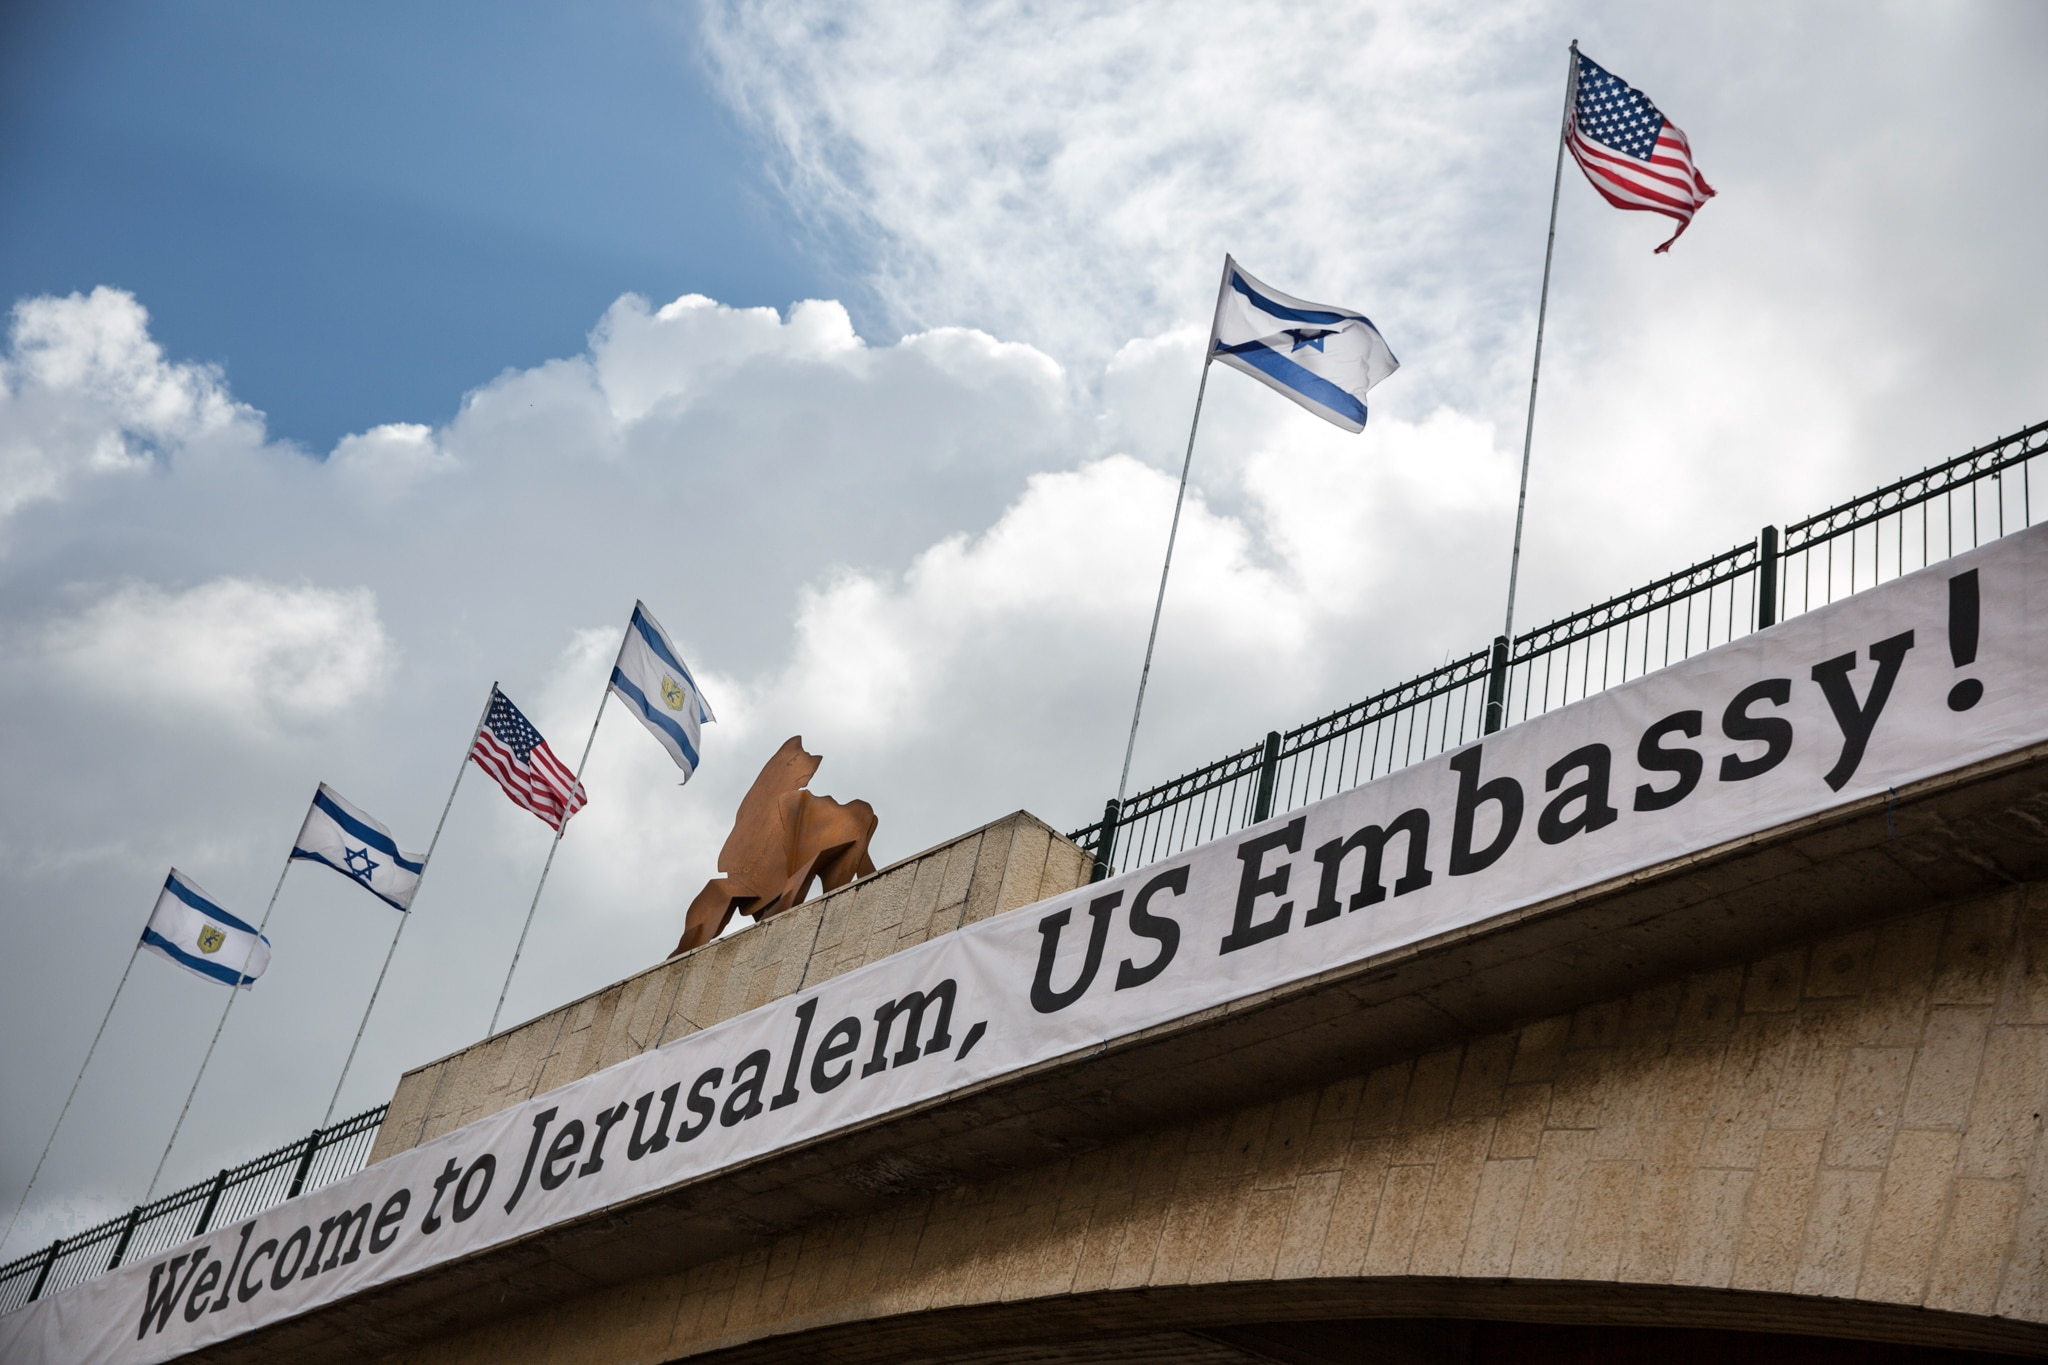 Flags and a sign on a bridge (© Ariel Schalit/AP Images)